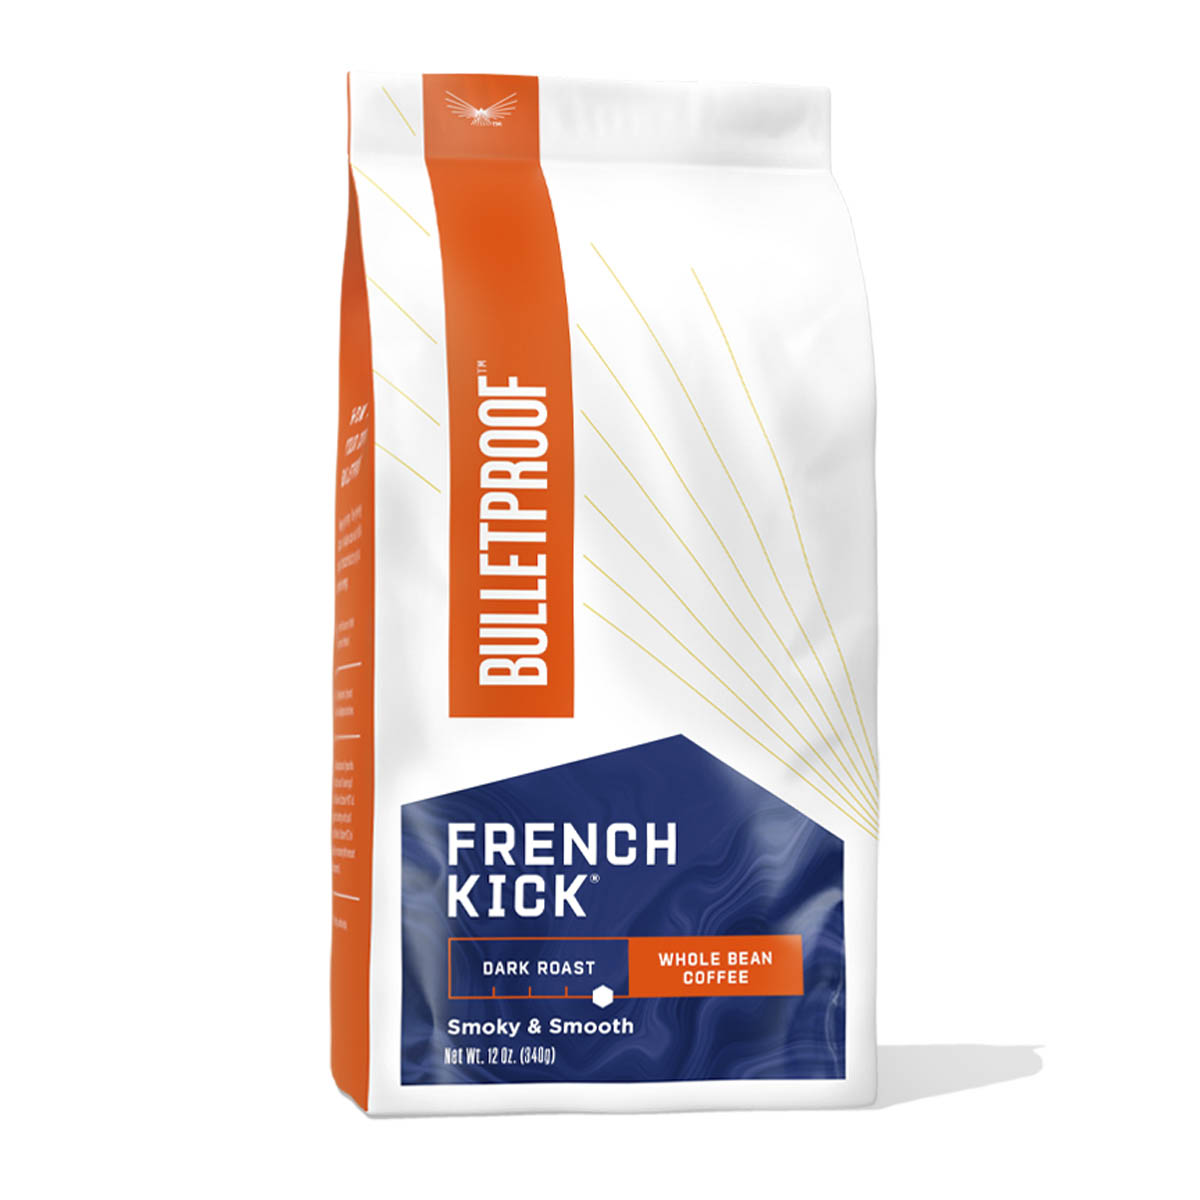 Bulletproof French Kick Dark Roast Whole Bean Coffee - 12 oz